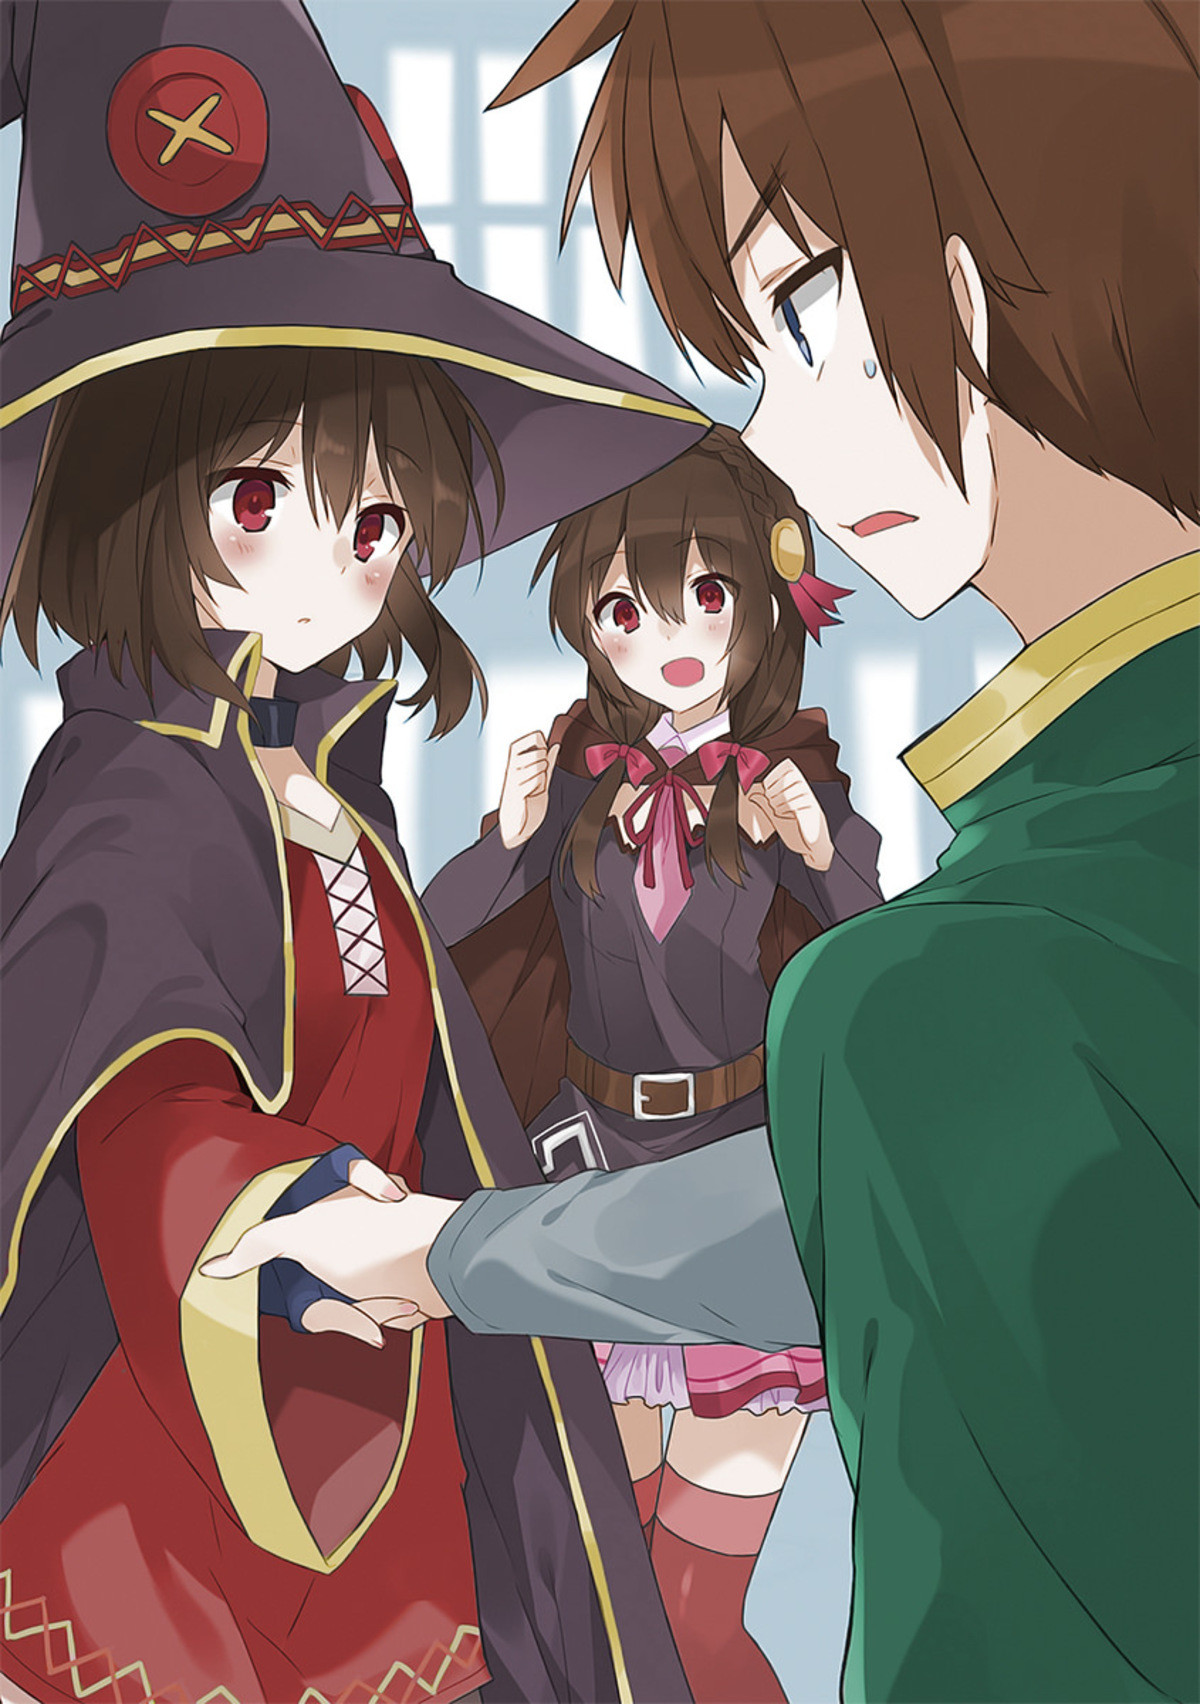 Megumin . join list: Lewds4DHeart (1609 subs)Mention History join list:. have something less lewd to adjust yourself